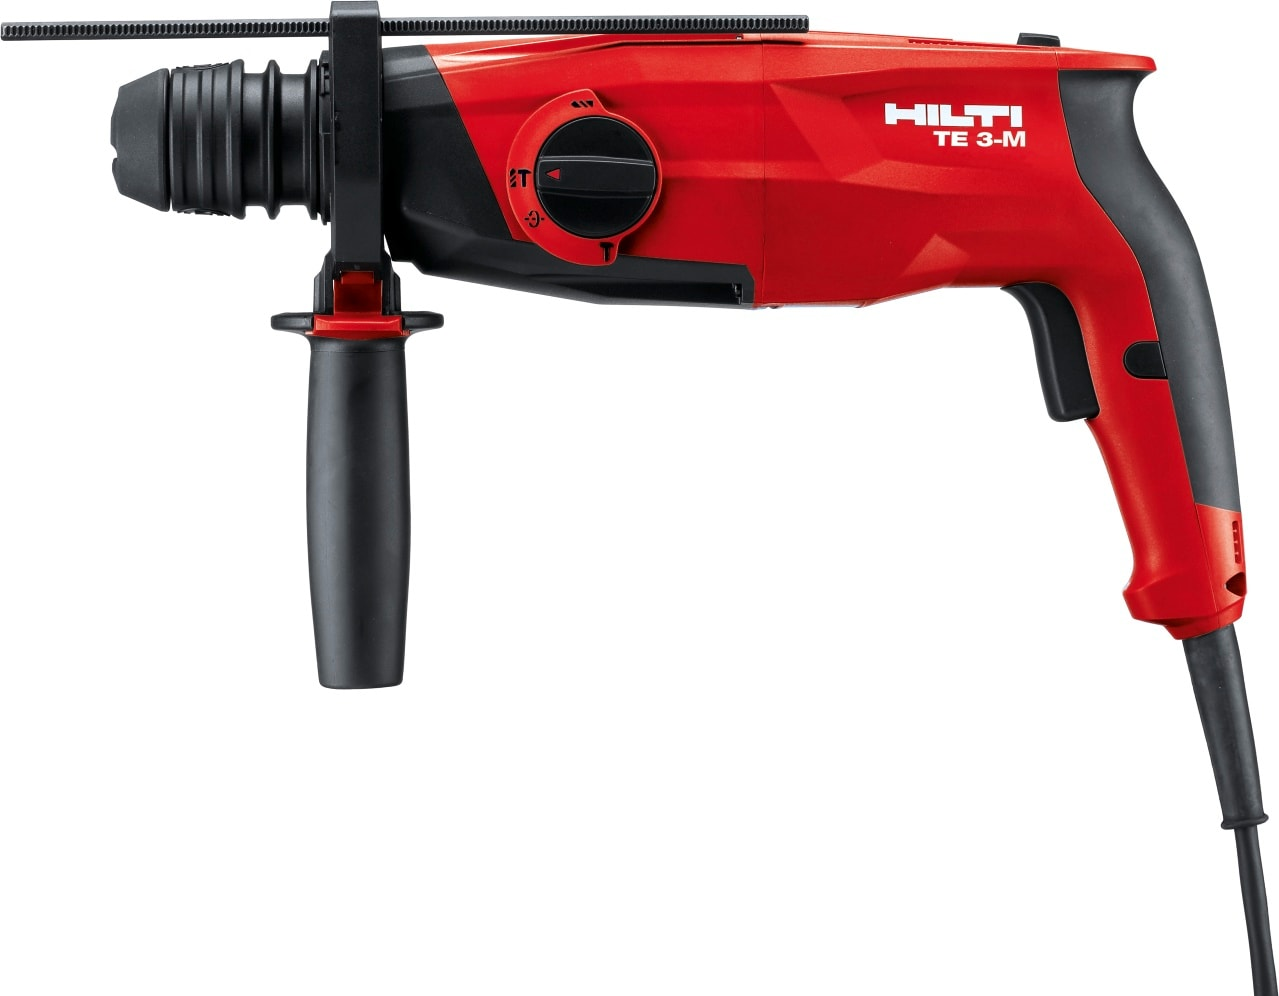 Hilti Perforateur TE 3-M